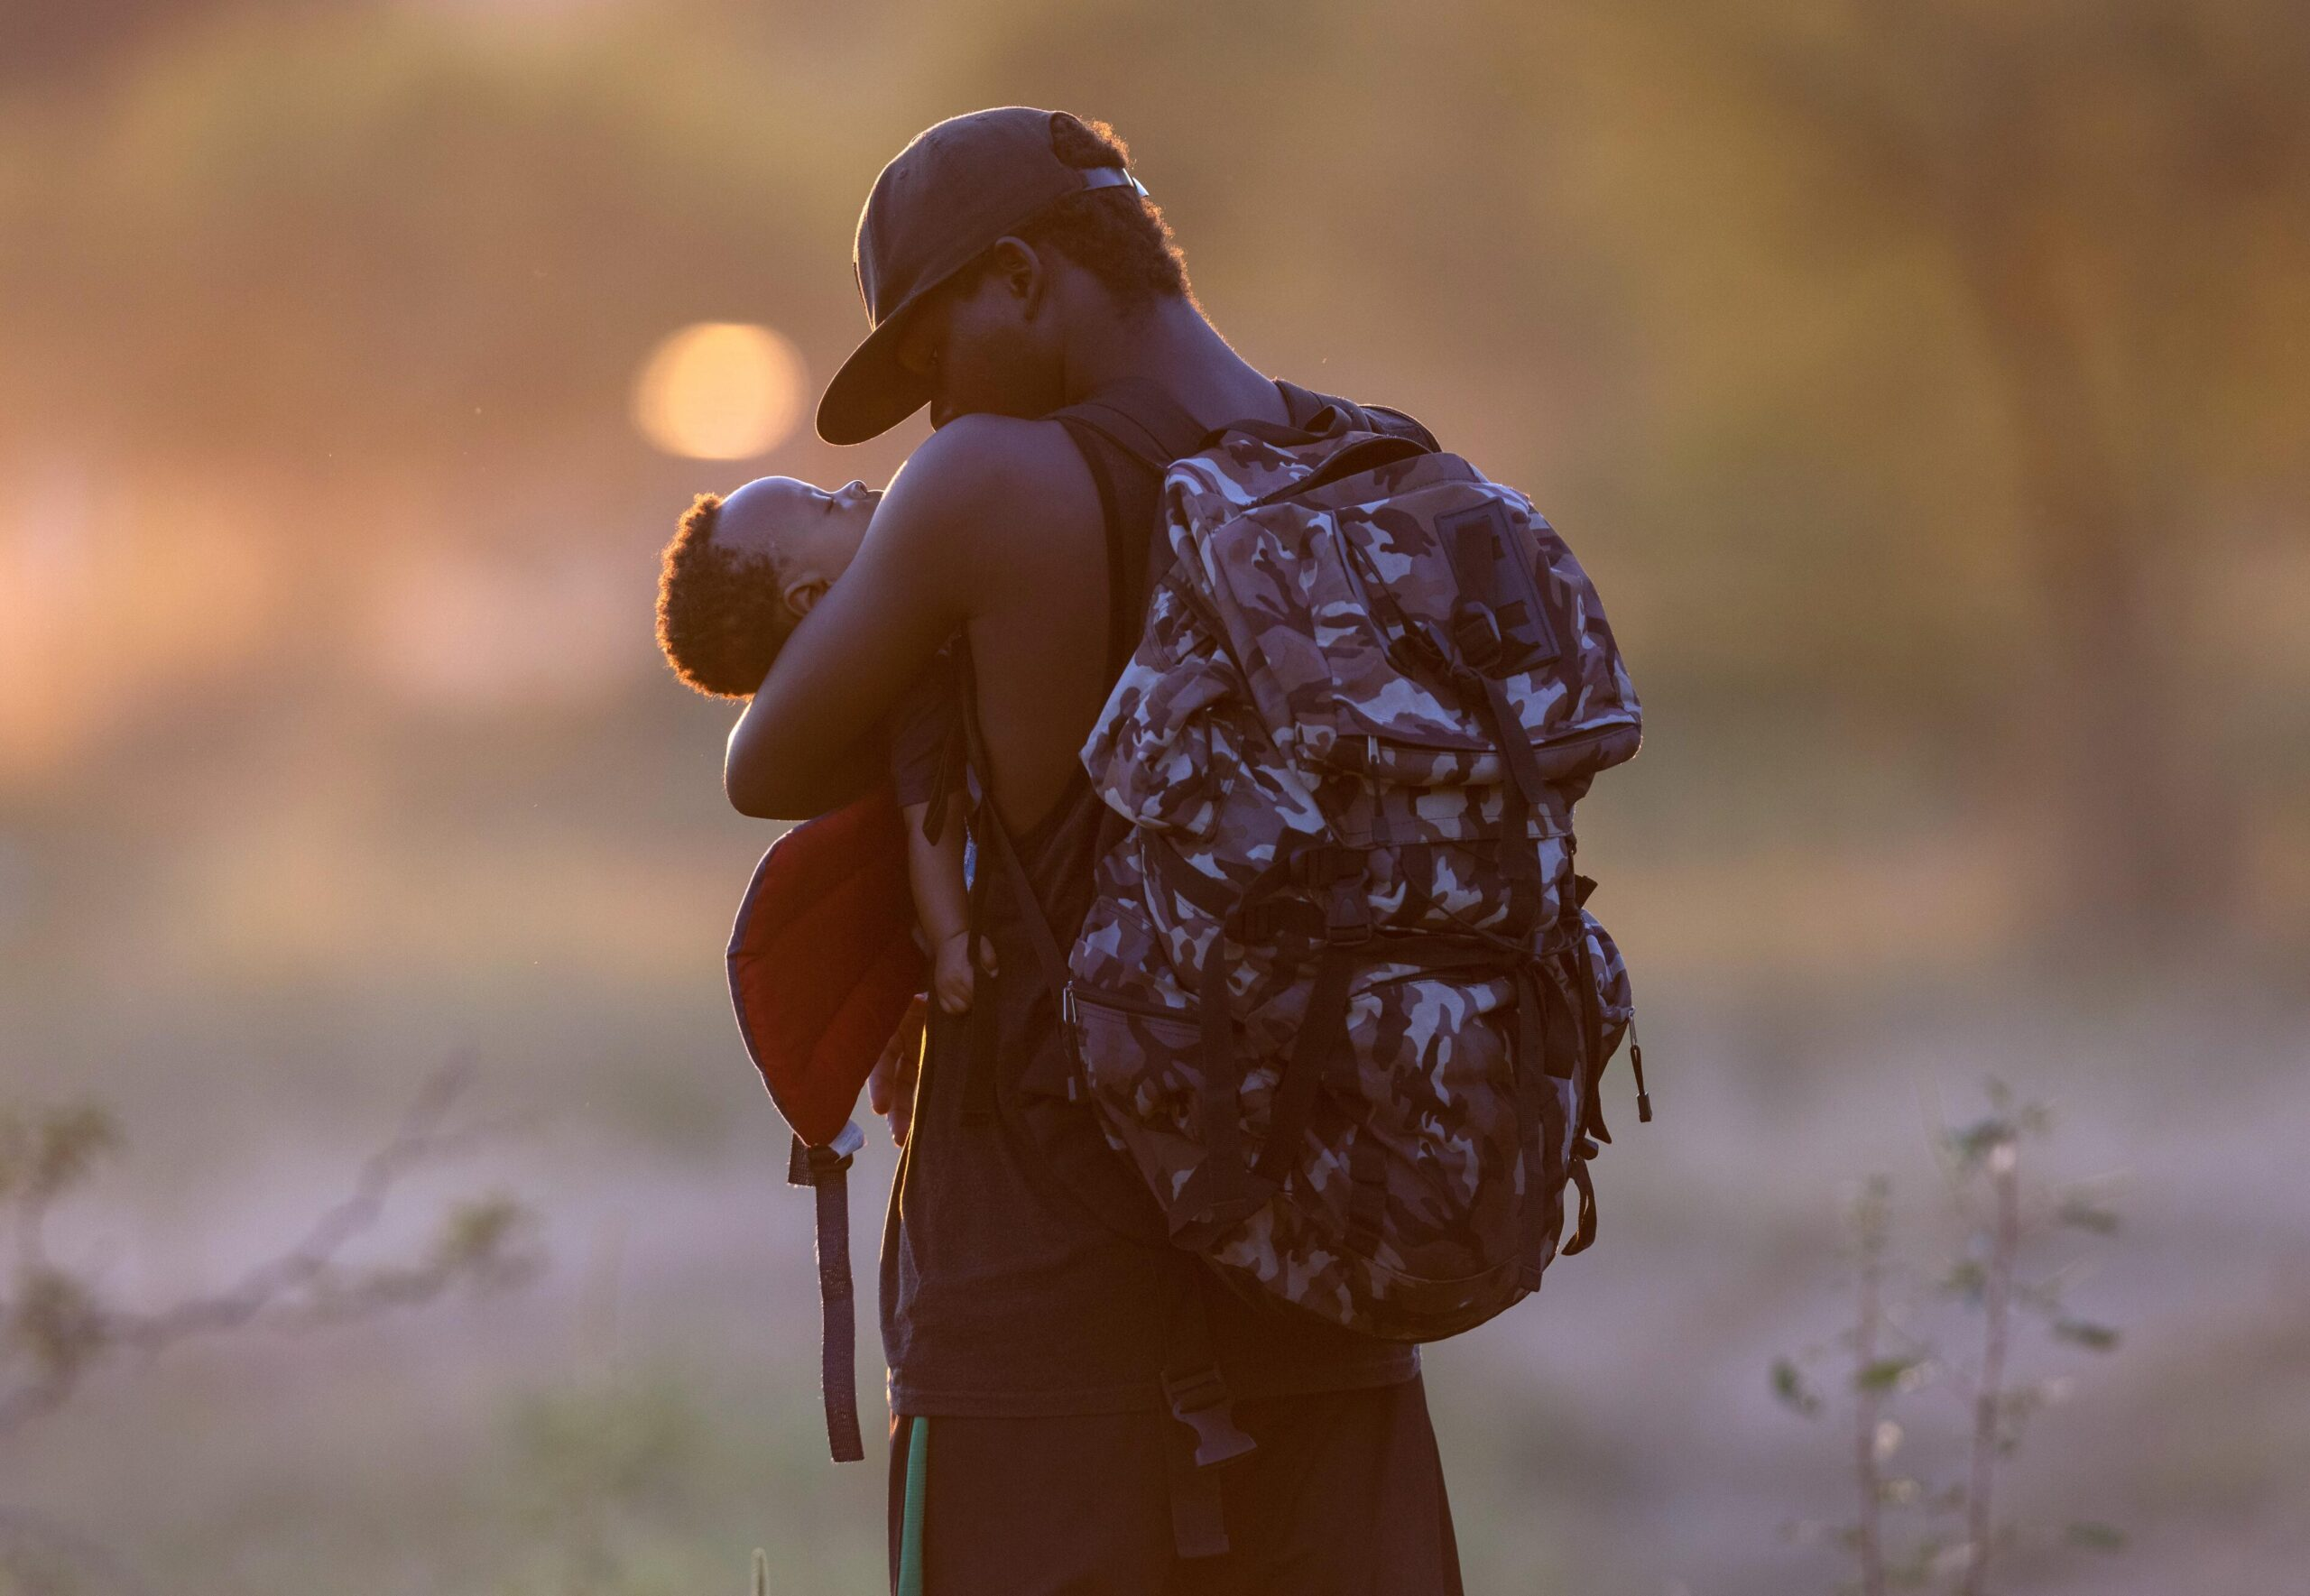 <i>John Moore/Getty Images</i><br/>An exhausted Haitian father cradles his son on the Mexican side of the Rio Grande from Del Rio